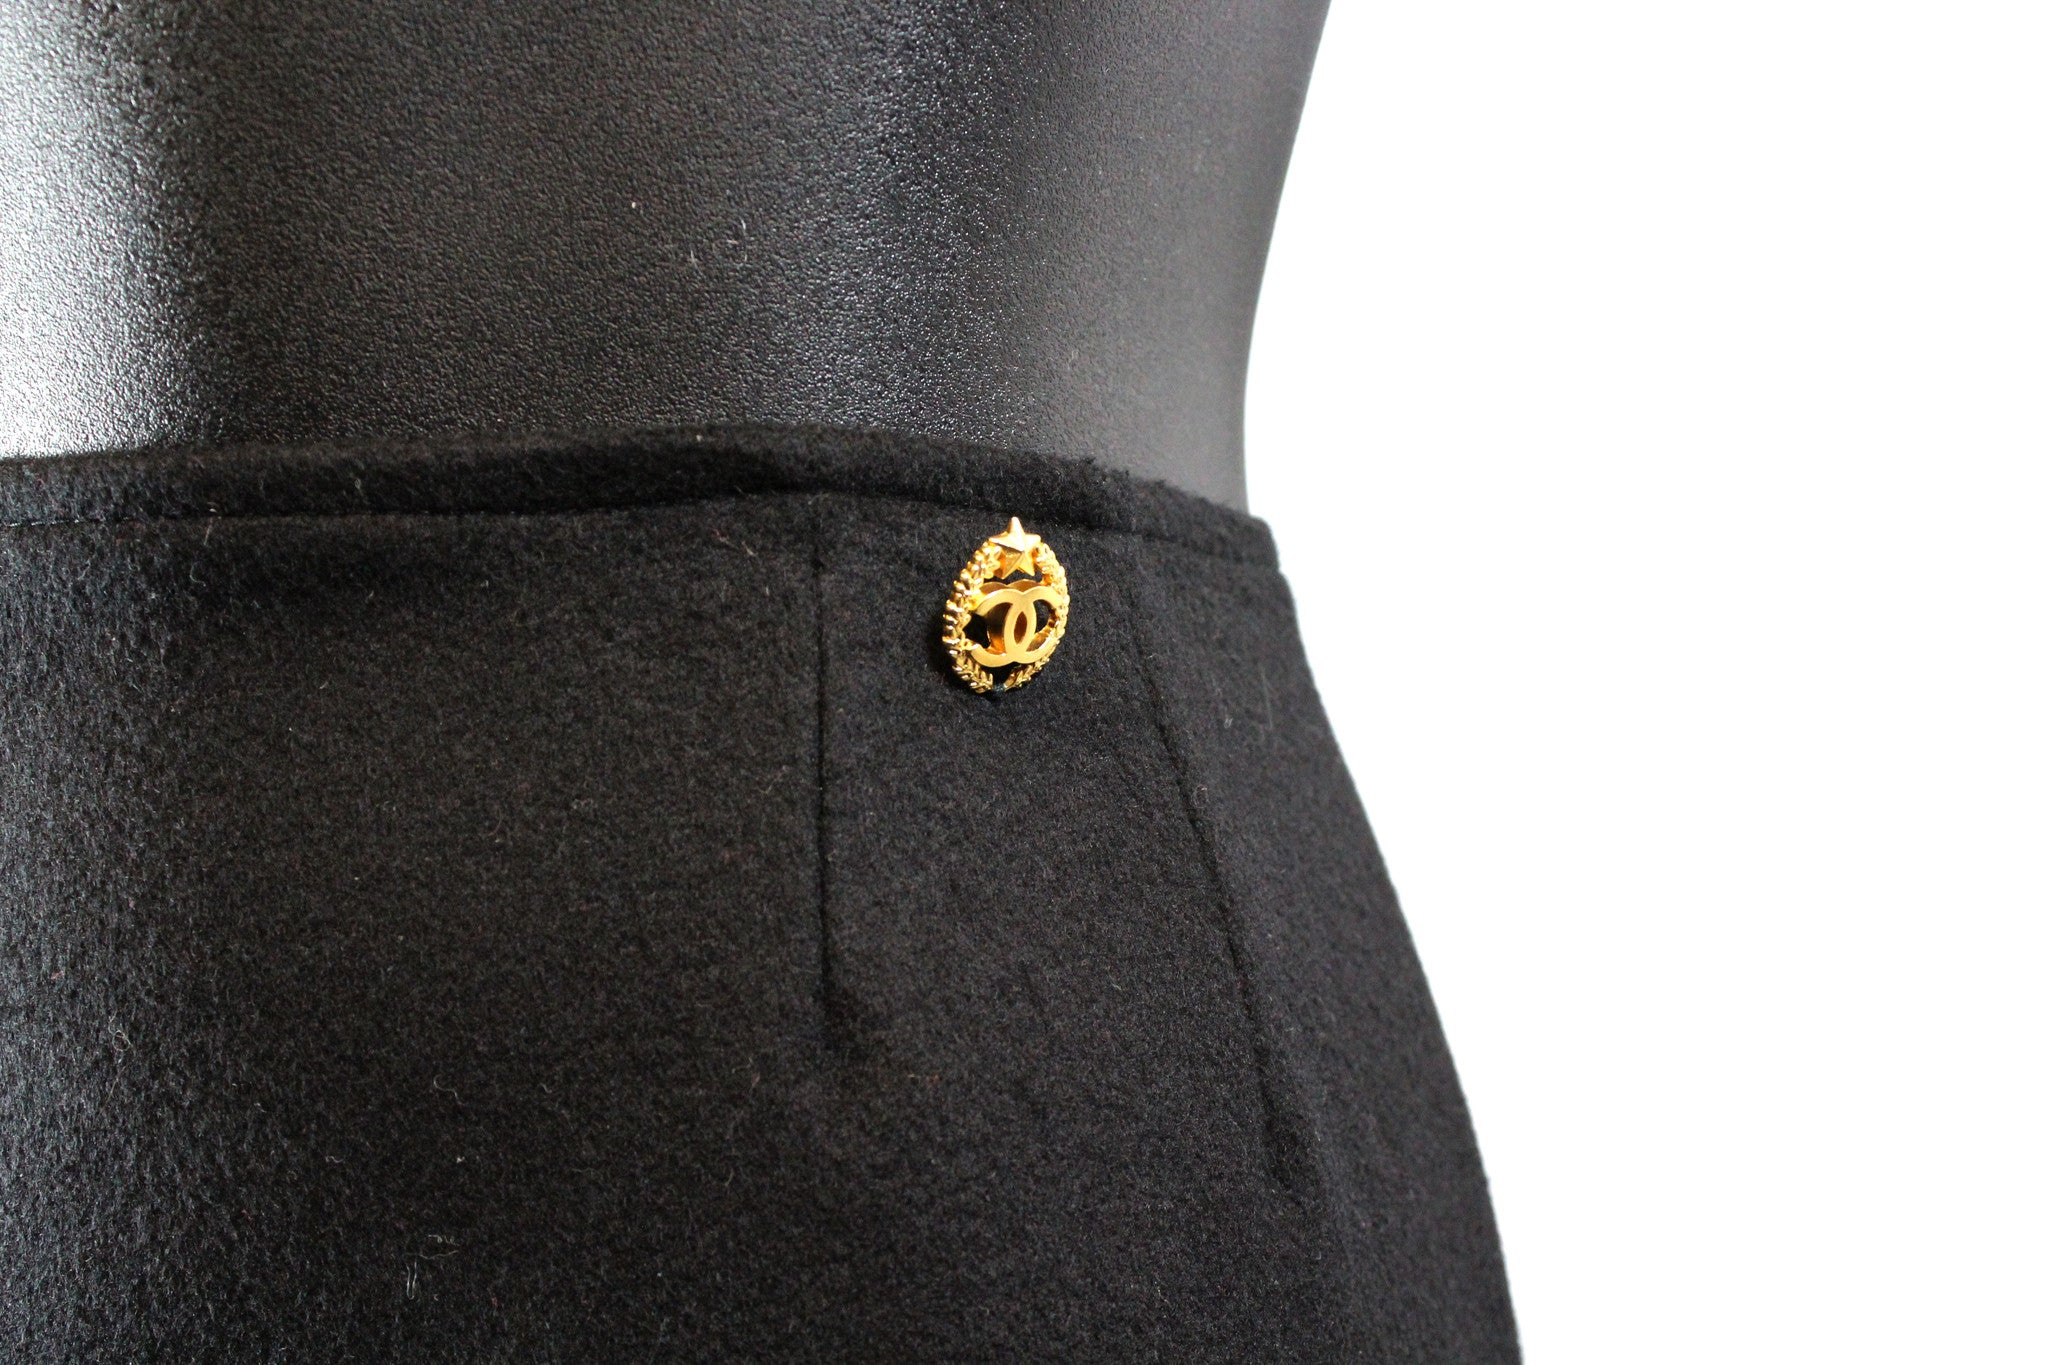 Chanel Black Cashmere Straight Skirt (Size 38) - Encore Consignment - 2